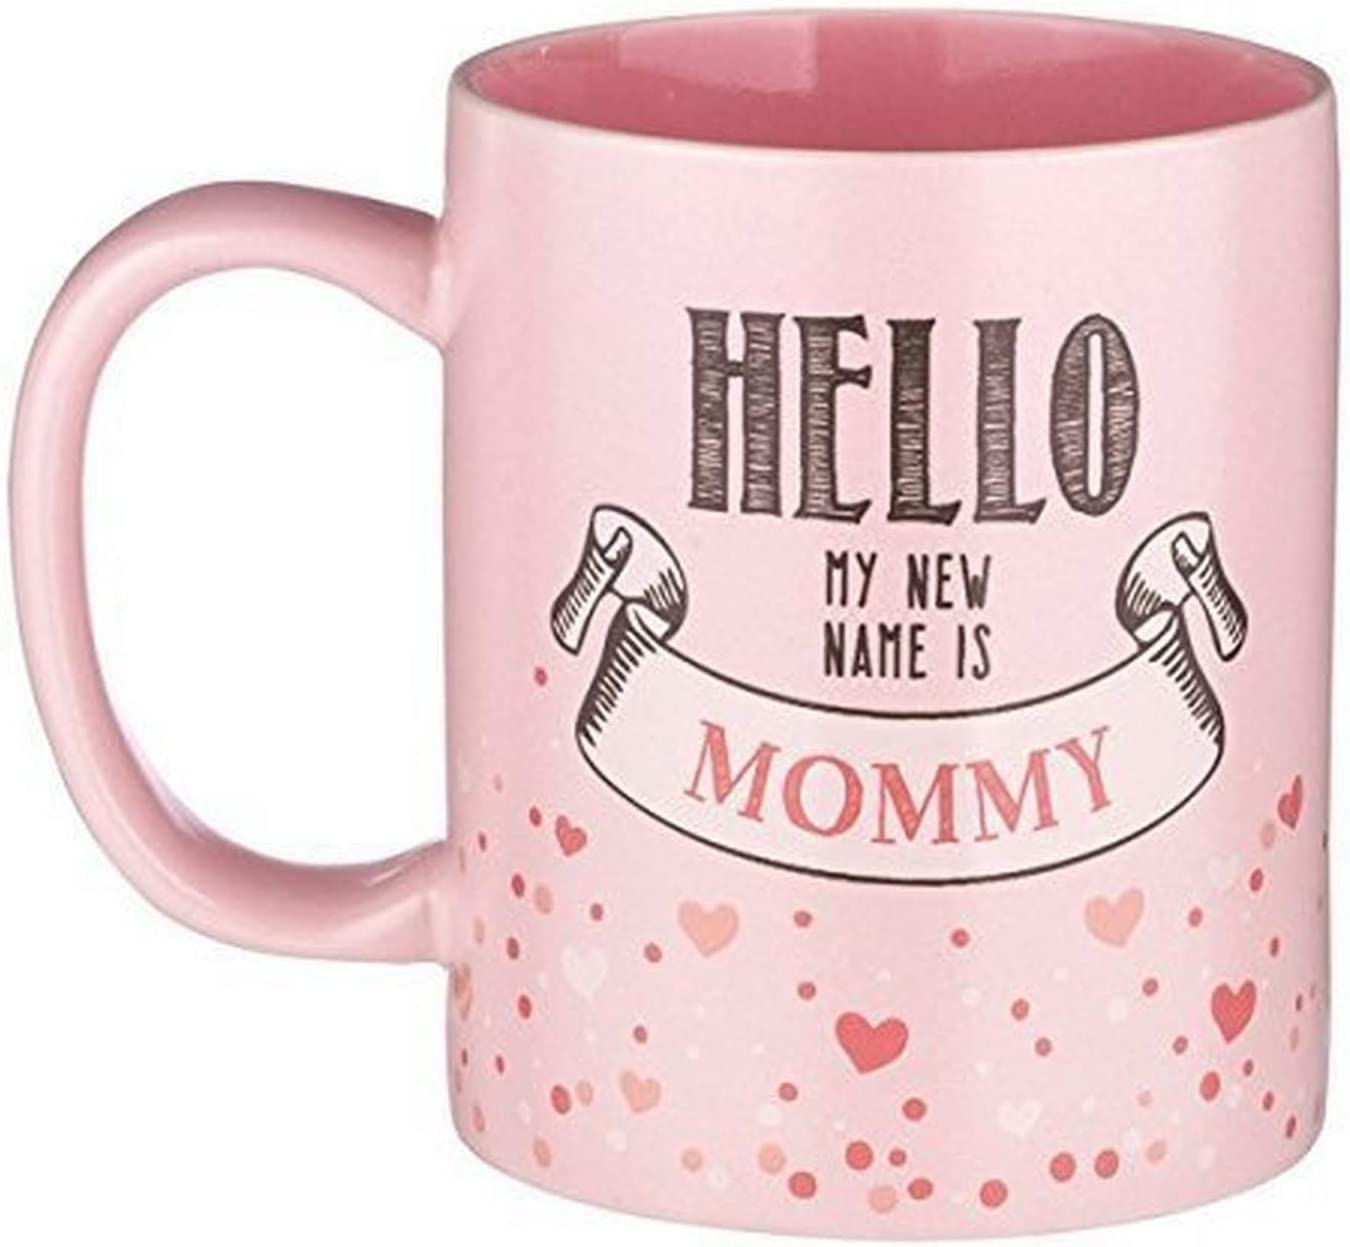 """Kelli's Shop 6"""" 12-Ounce Mother Mug-Hello My New Name is Mommy-Pink Ceramic with Gift Box, Multicolor"""